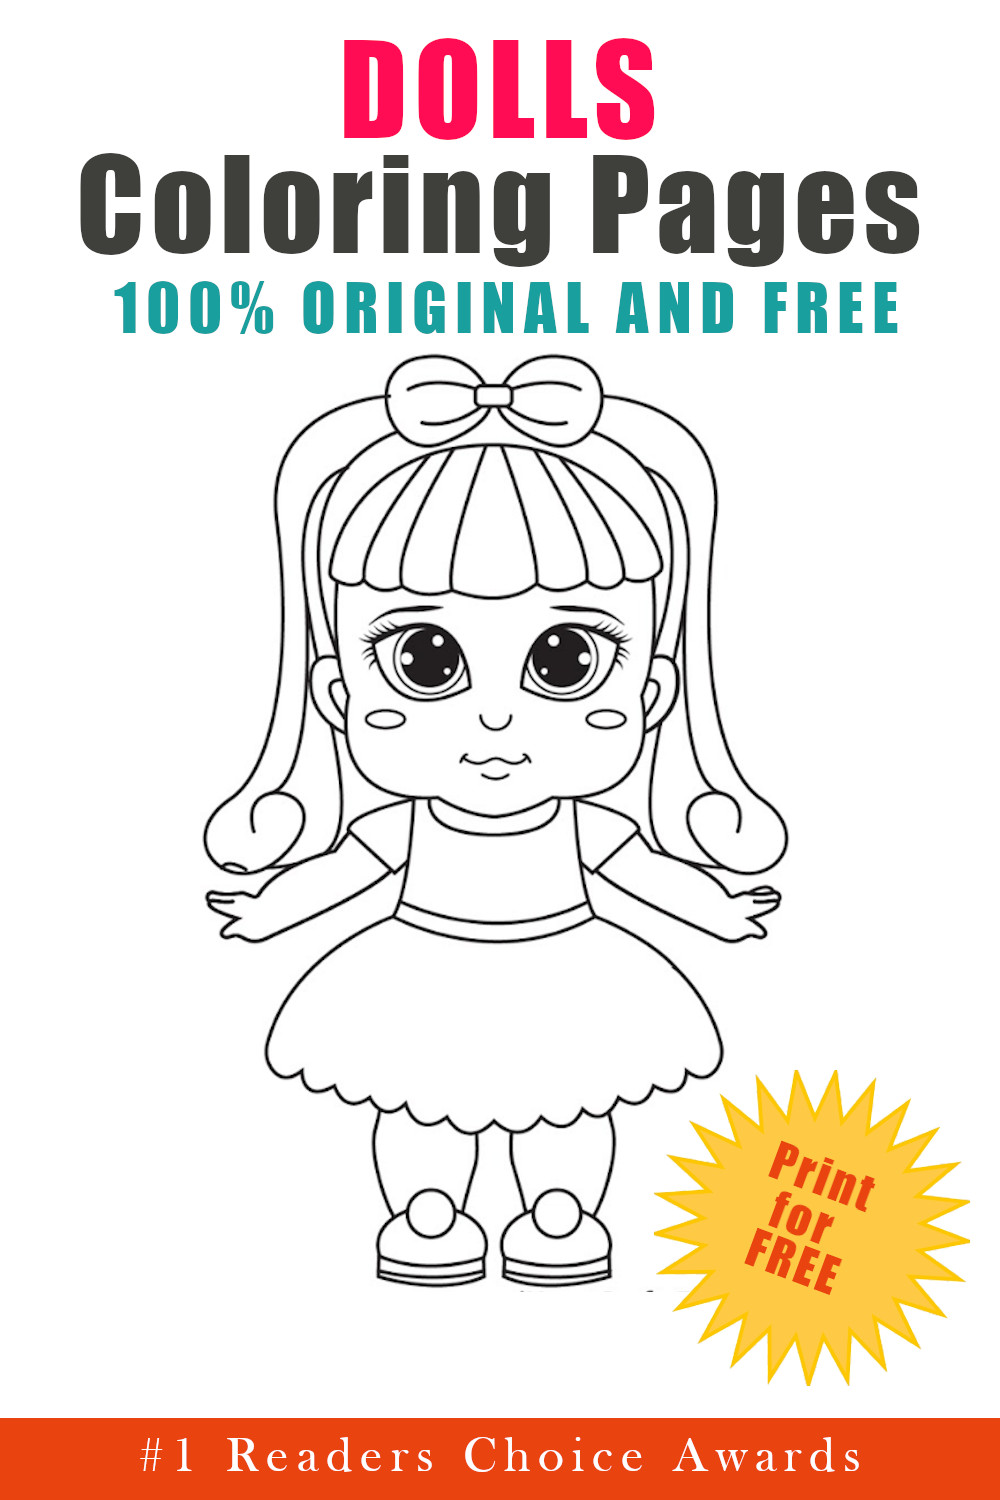 original and free dolls coloring pages